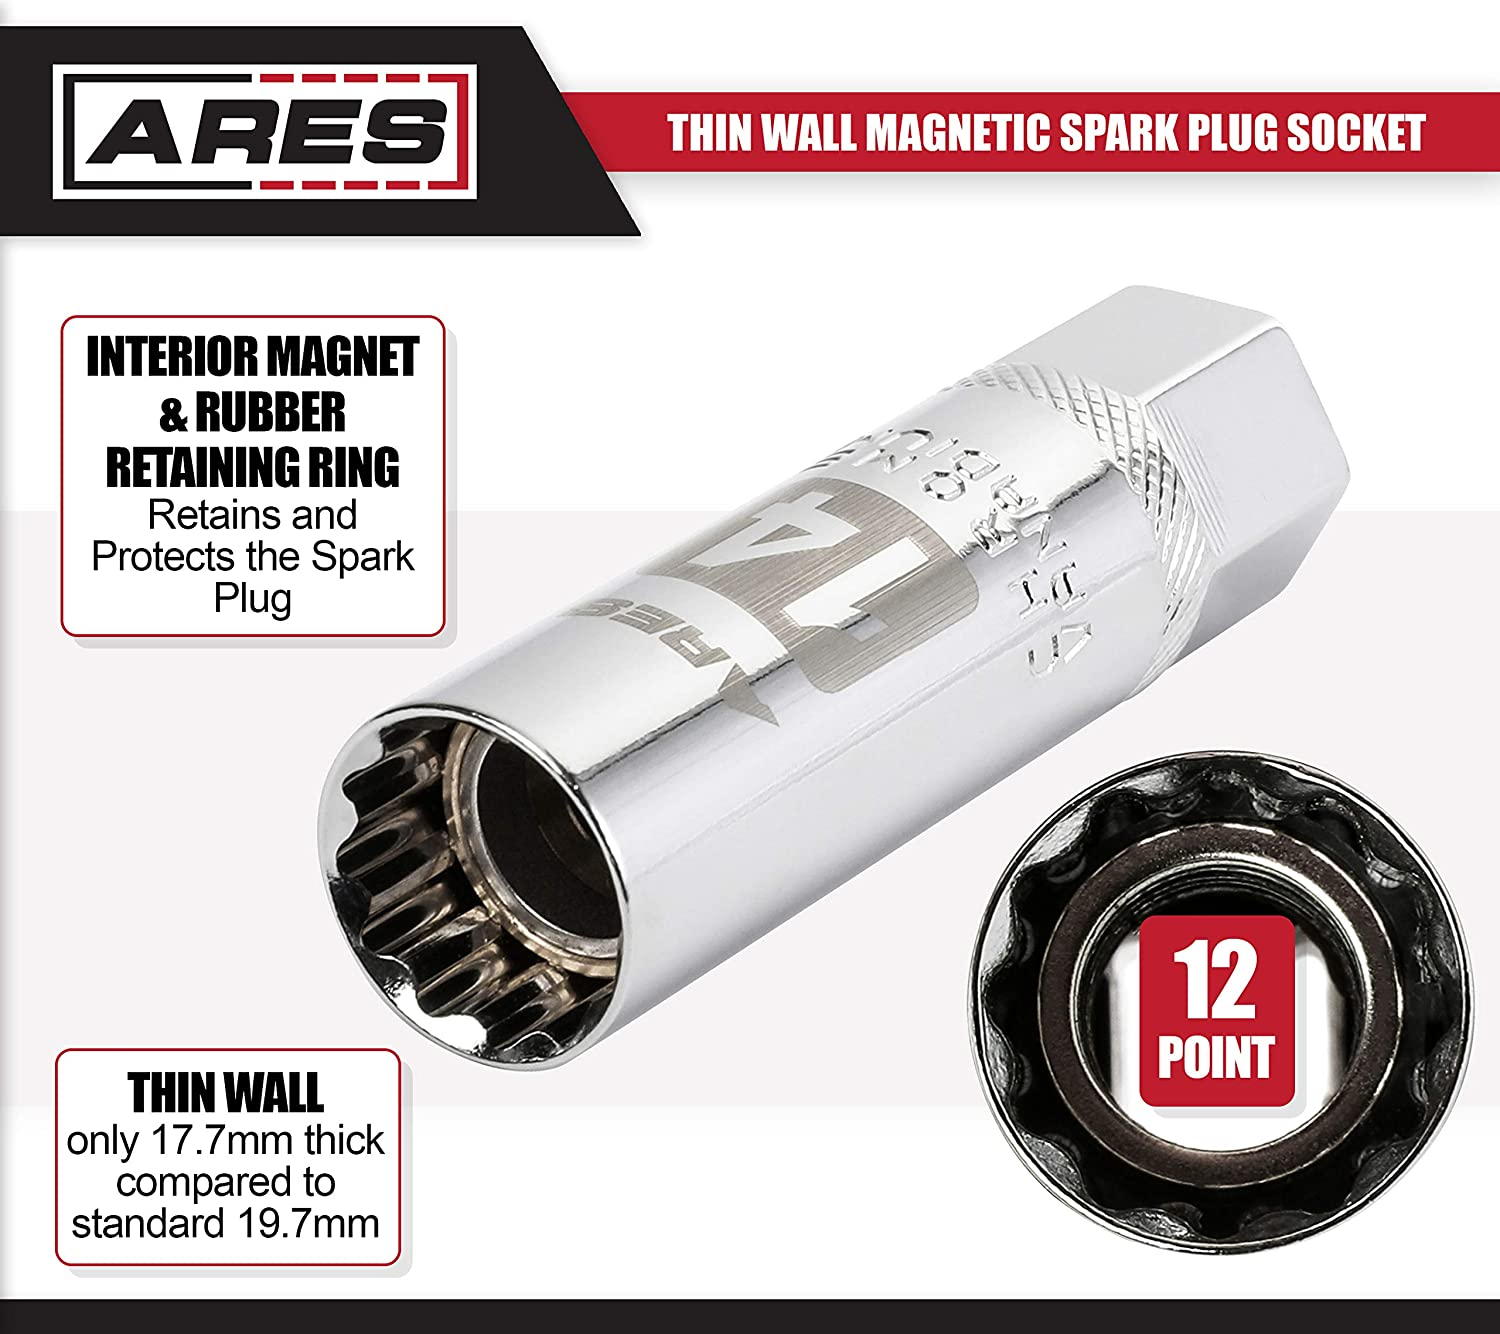 ARES 11017-14mm 3//8-inch Drive Thin Wall Magnetic Spark Plug Socket 12-Point Design for Enhanced Grip and Fit Walls 2mm Thinner Than Standard Spark Plug Sockets